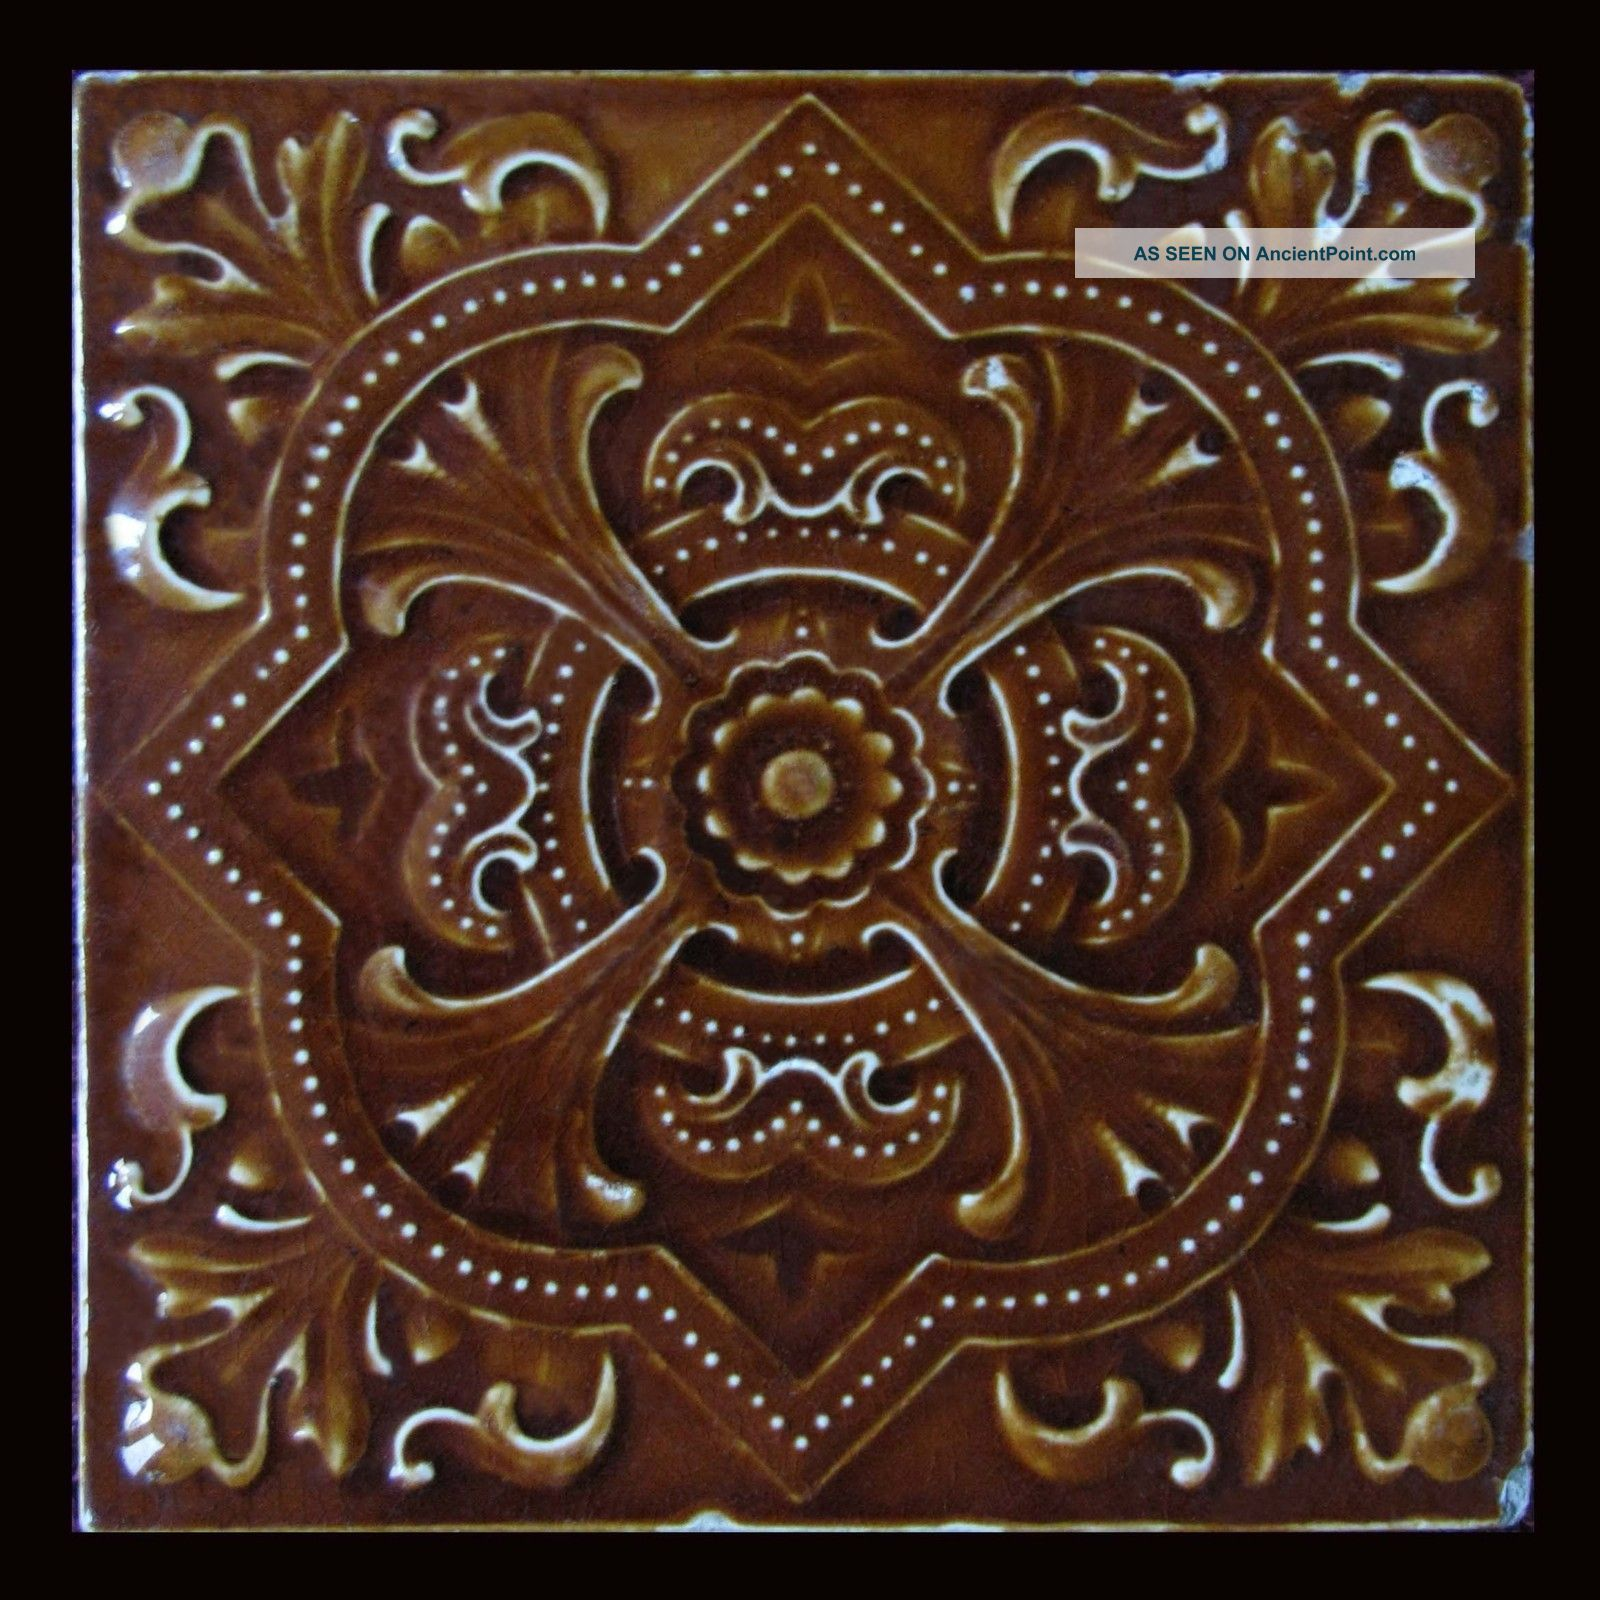 Stunning antique victorian pressed majolica ceramic tile in rich stunning antique victorian pressed majolica ceramic tile in rich sienna browns tiles photo doublecrazyfo Image collections